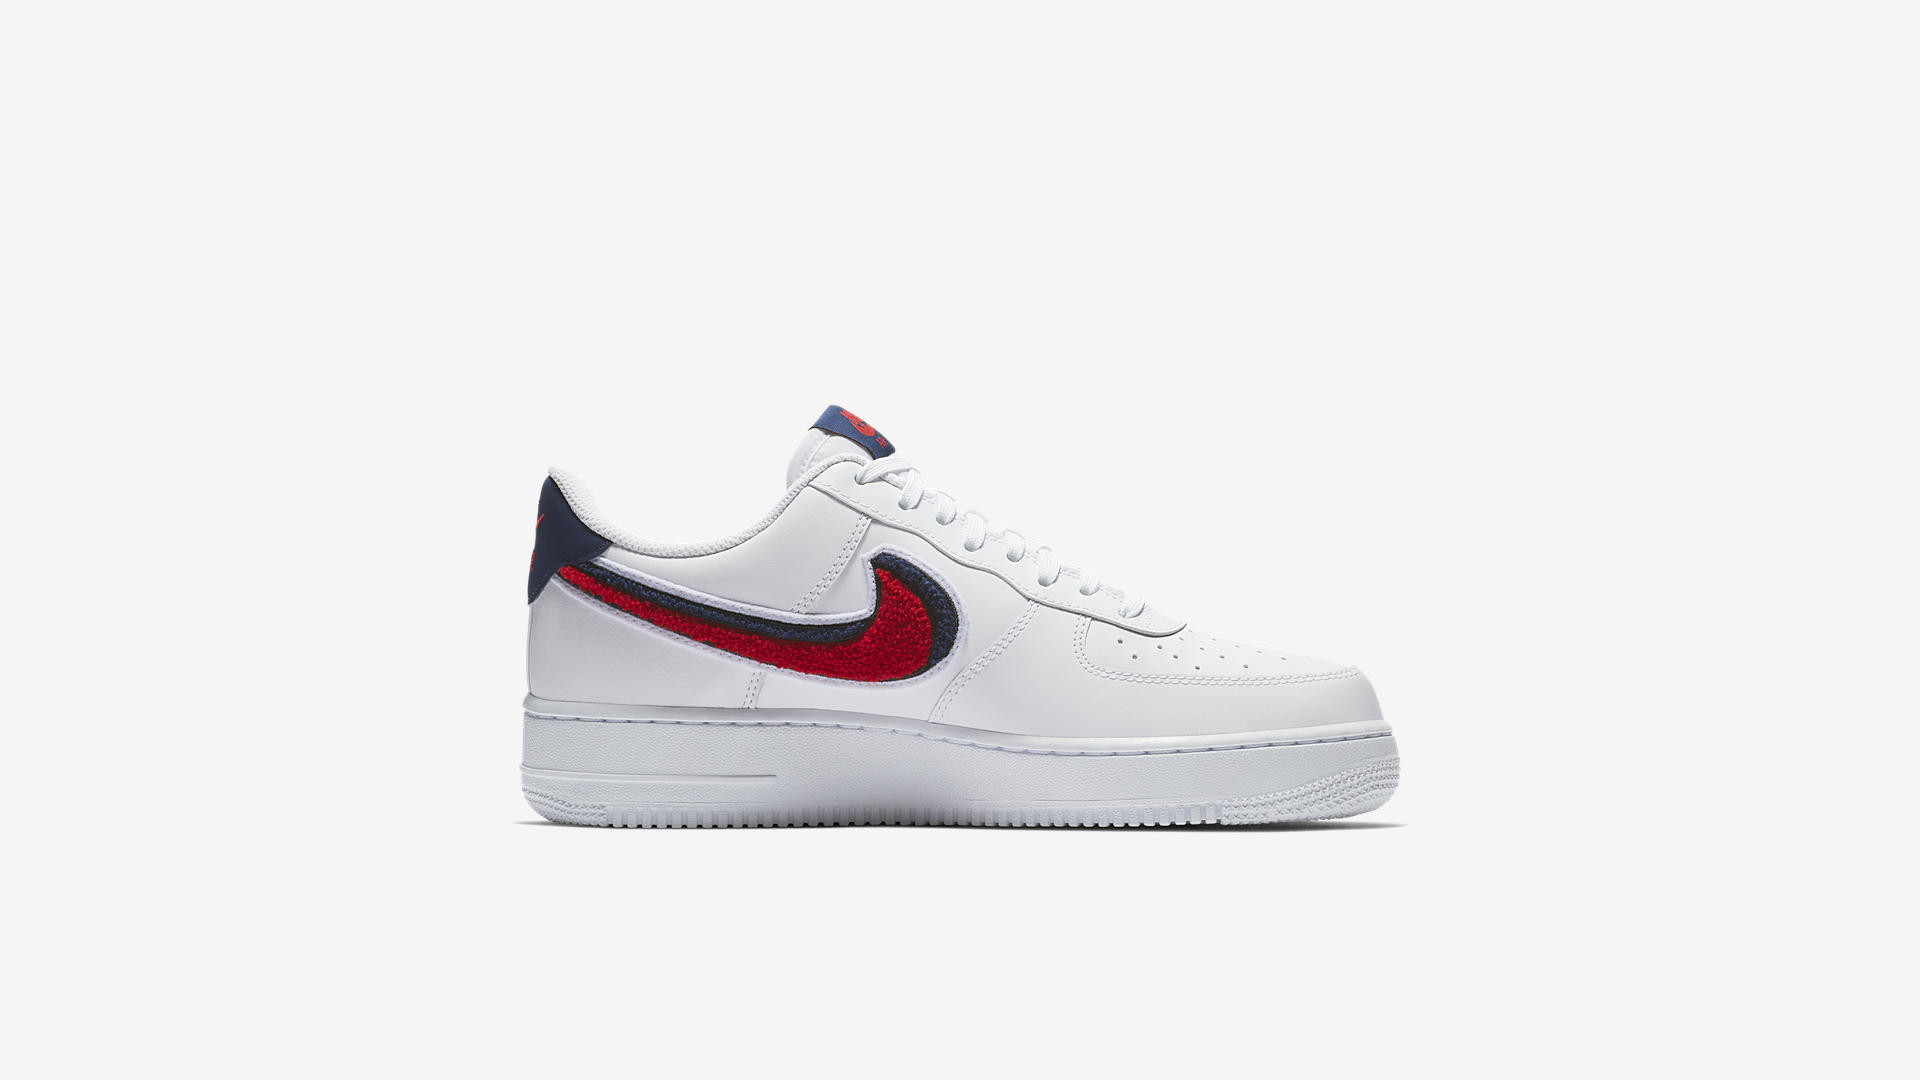 Nike Air Force 1 '07 LV8 White/University Red-Blue Void (823511-106)